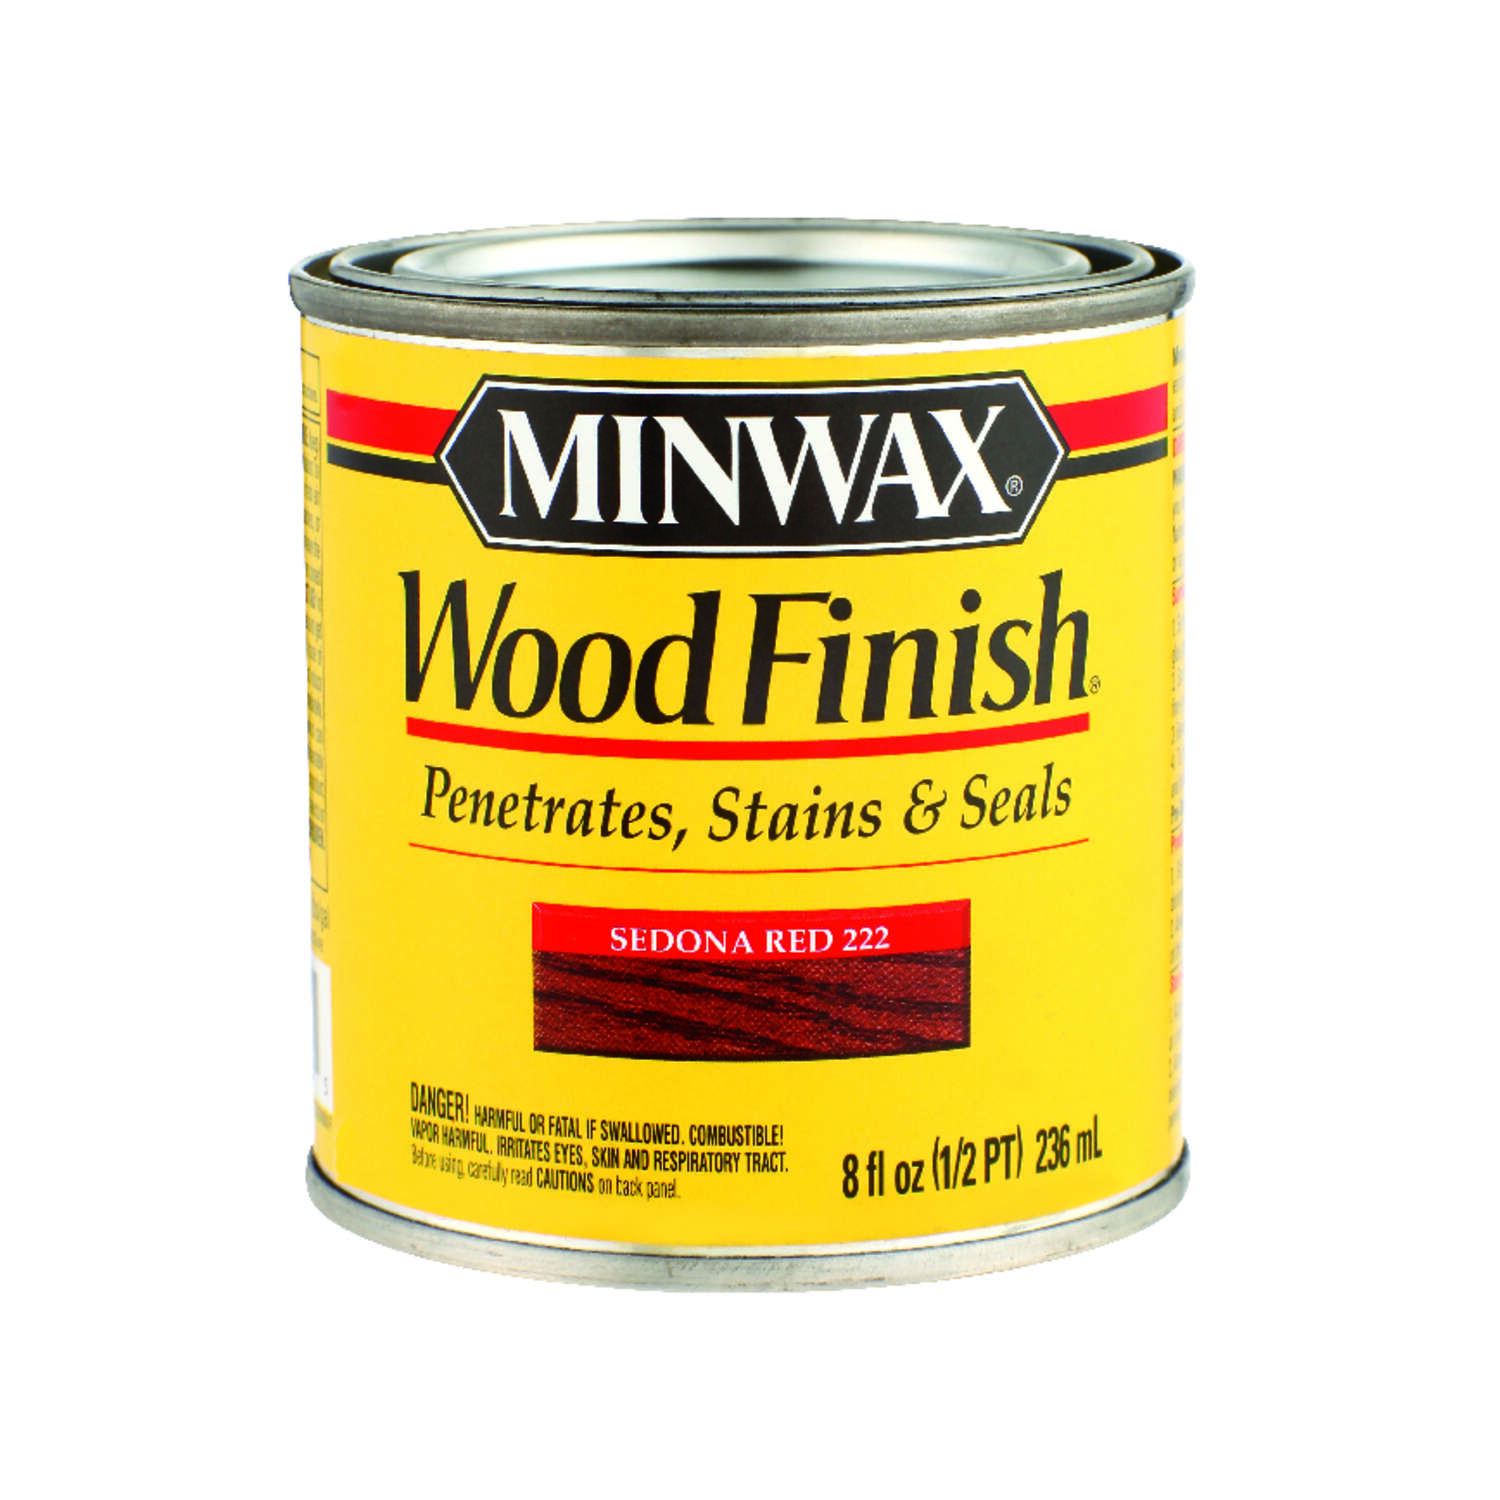 Minwax  Wood Finish  Transparent  Sedona Red  Wood Stain  0.5 pt.